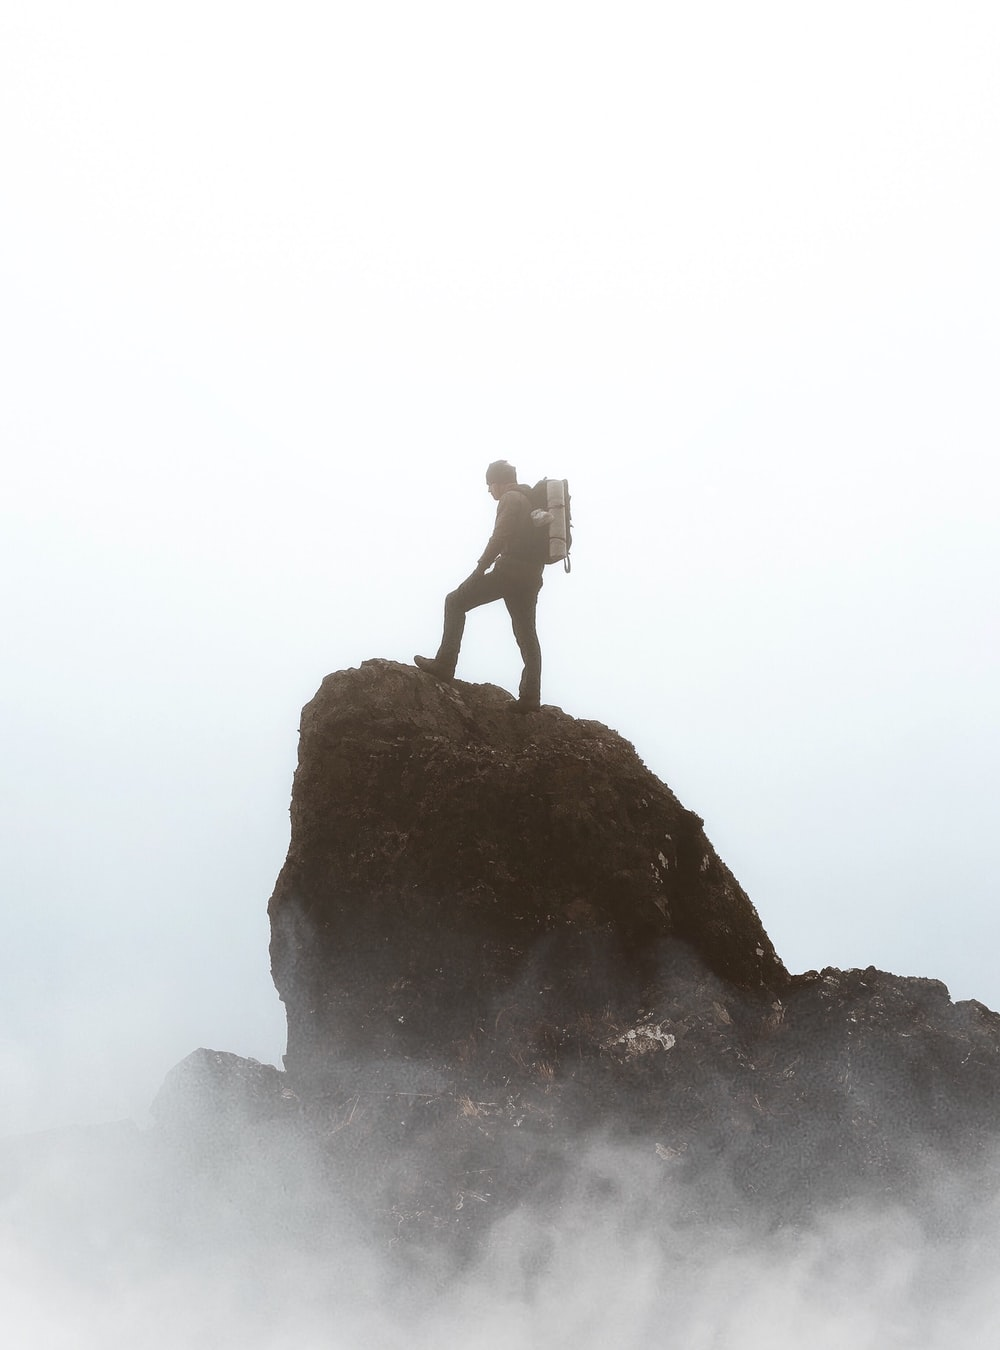 silhouette photography person standing on rock formation